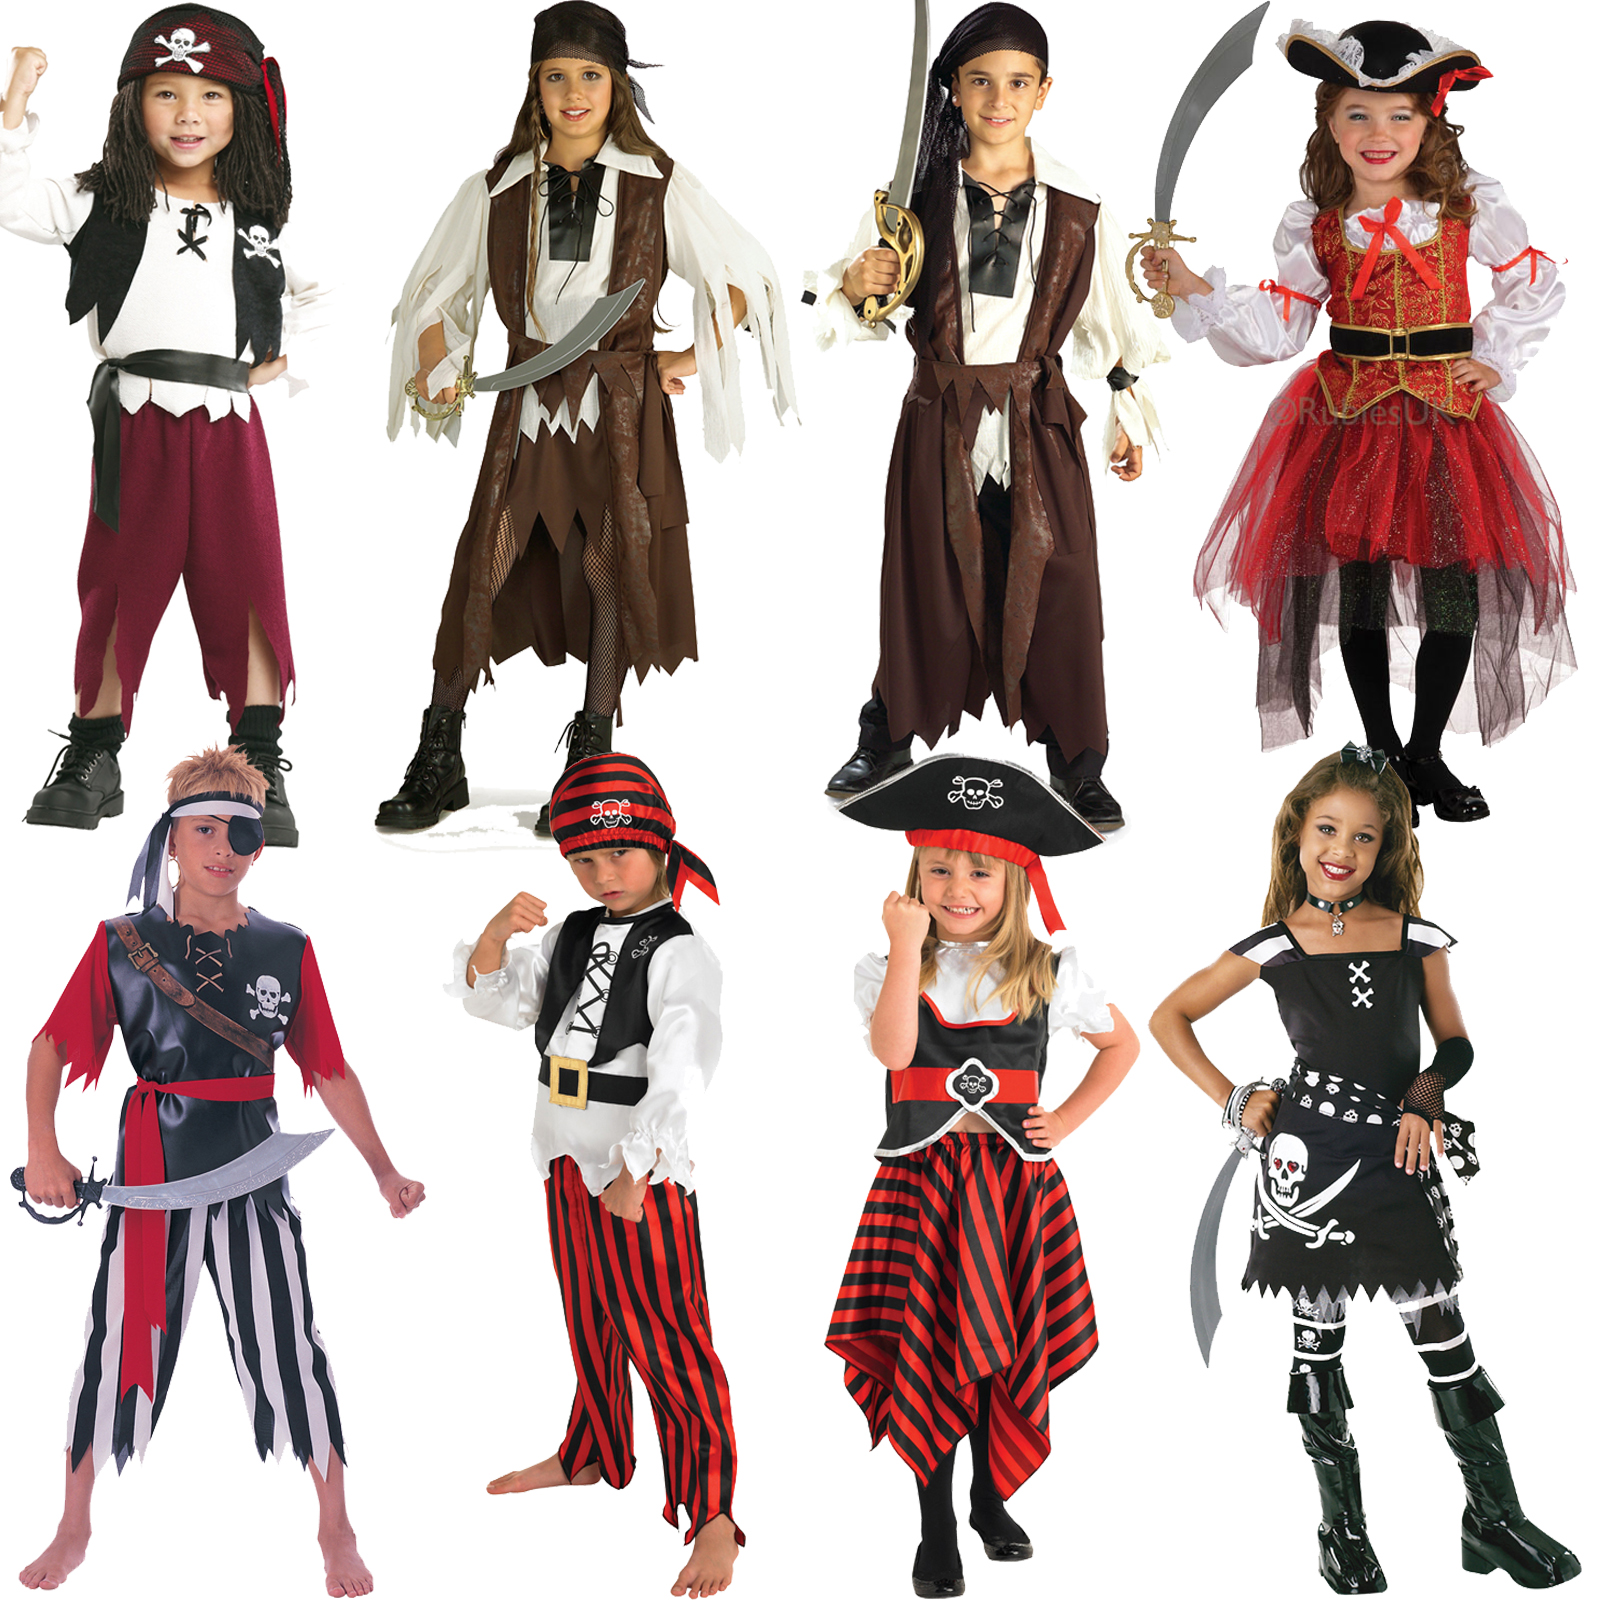 Sentinel Caribbean Book Week Pirate Boys Fancy Dress Costume Girls Buccaneer Kids Outfit  sc 1 st  eBay & Caribbean Book Week Pirate Boys Fancy Dress Costume Girls Buccaneer ...